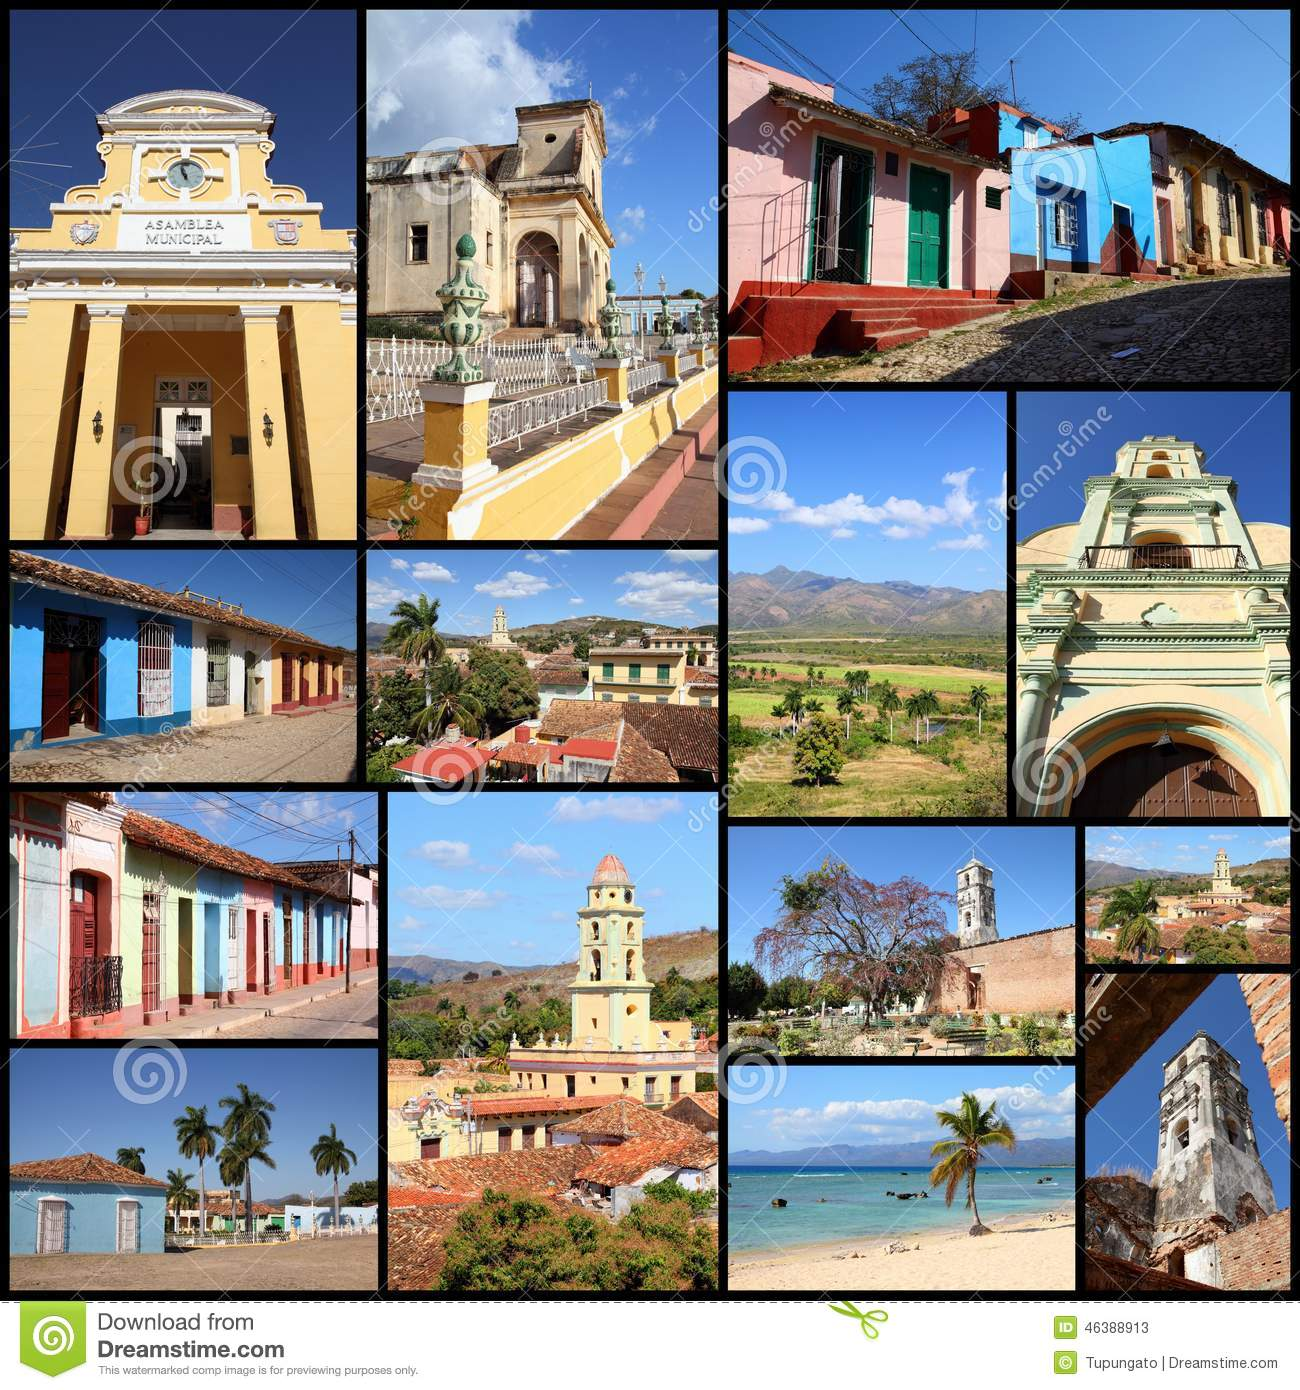 https://thumbs.dreamstime.com/z/trinidad-cuba-photos-collage-travel-memories-photo-collection-images-colonial-architecture-churches-ancon-beach-46388913.jpg